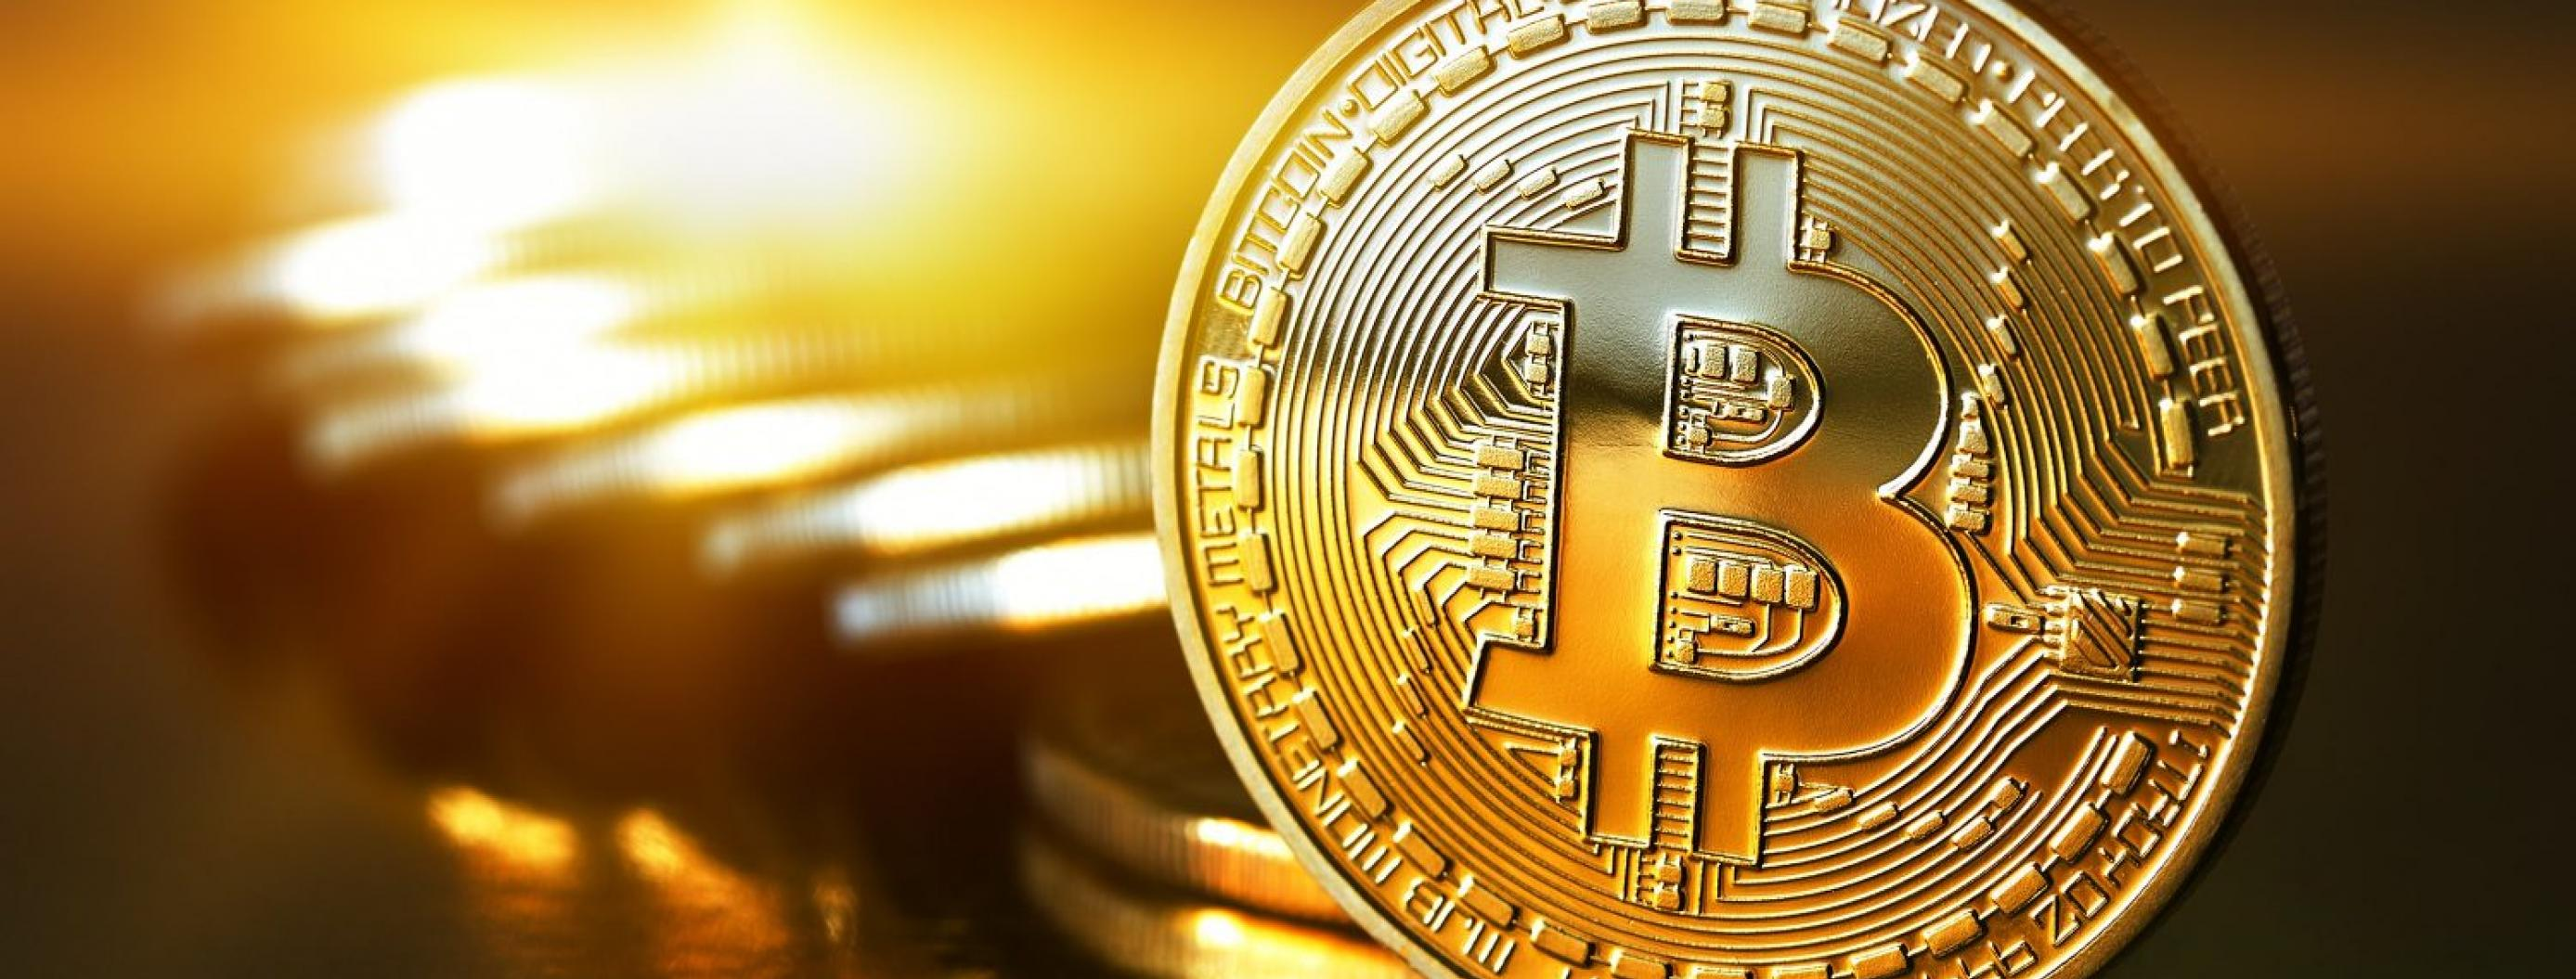 Here's How to Buy and Sell Bitcoin